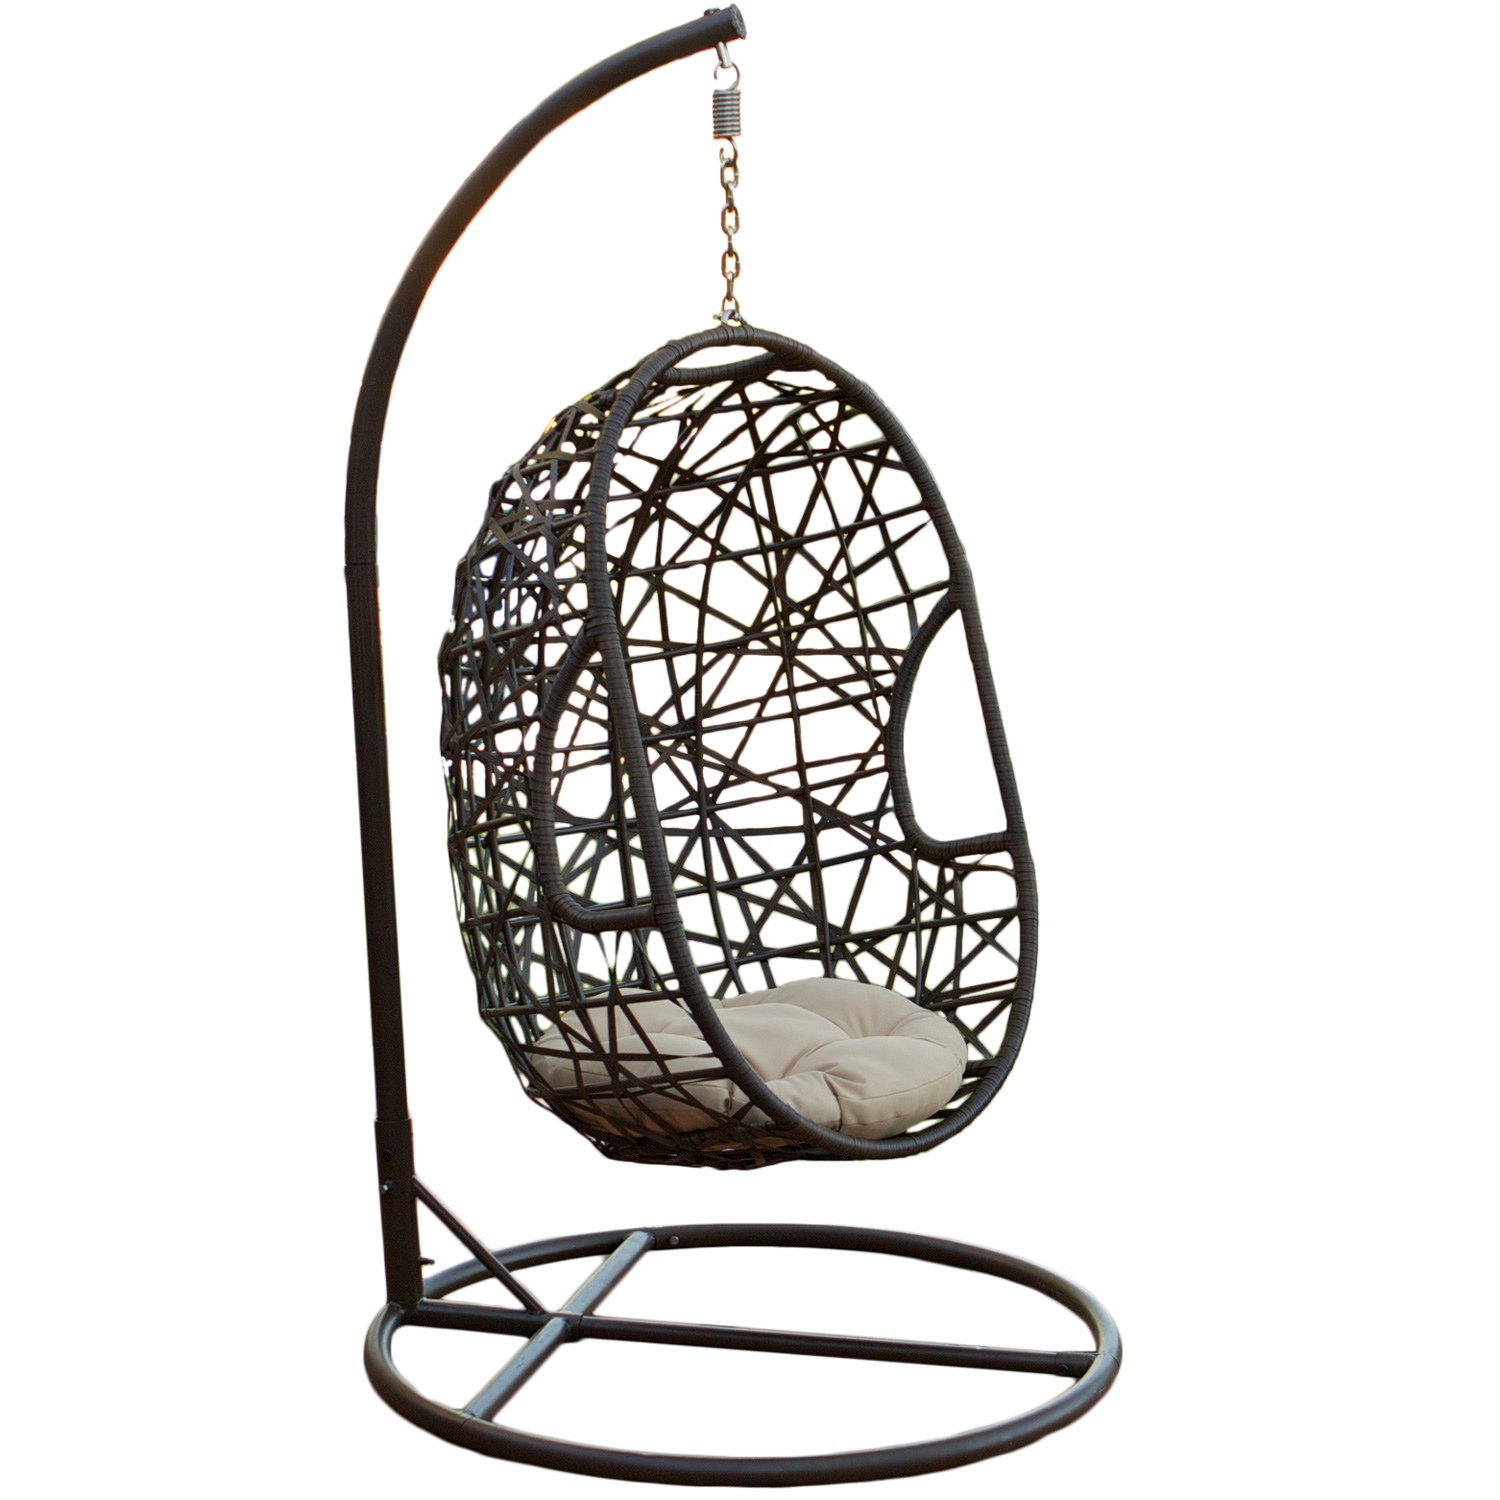 Egg Swing Chairs Best Selling Home Decor Egg Shaped Swing Chair Home Furniture